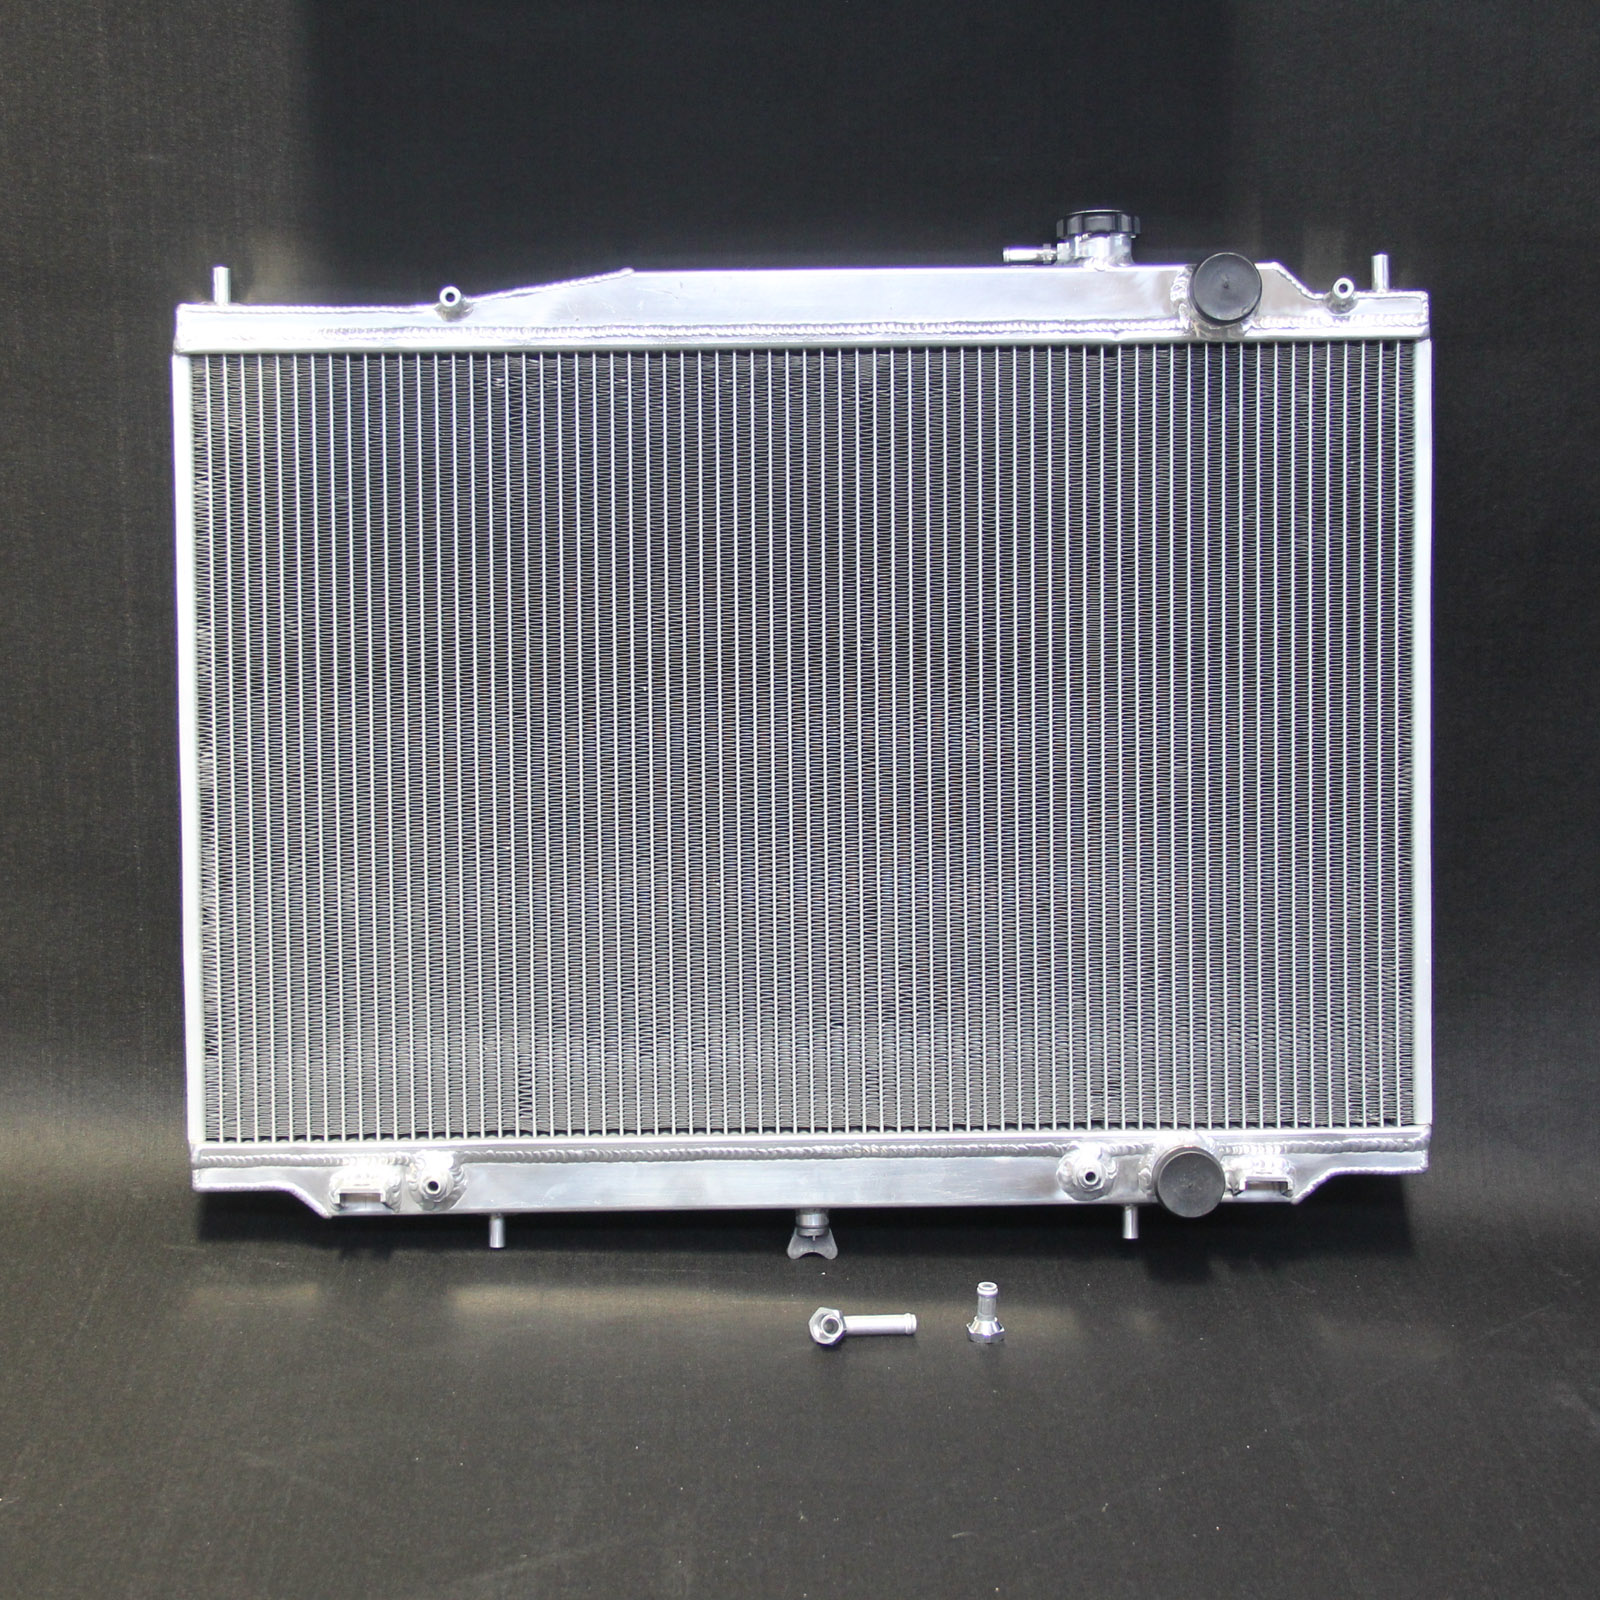 hight resolution of details about aluminum radiator for nissan navara d22 1997 05 3 0l turbo diesel 3 3l v6 petrol